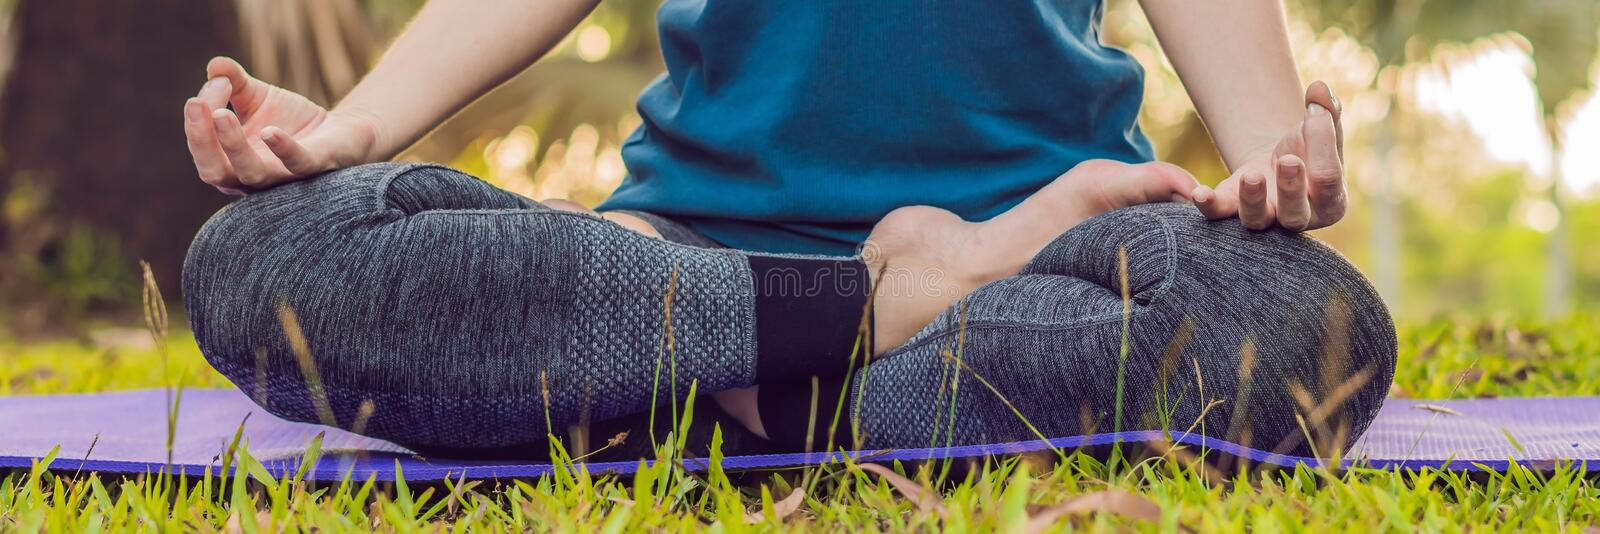 Woman practicing yoga in a tropical park BANNER, long format stock images